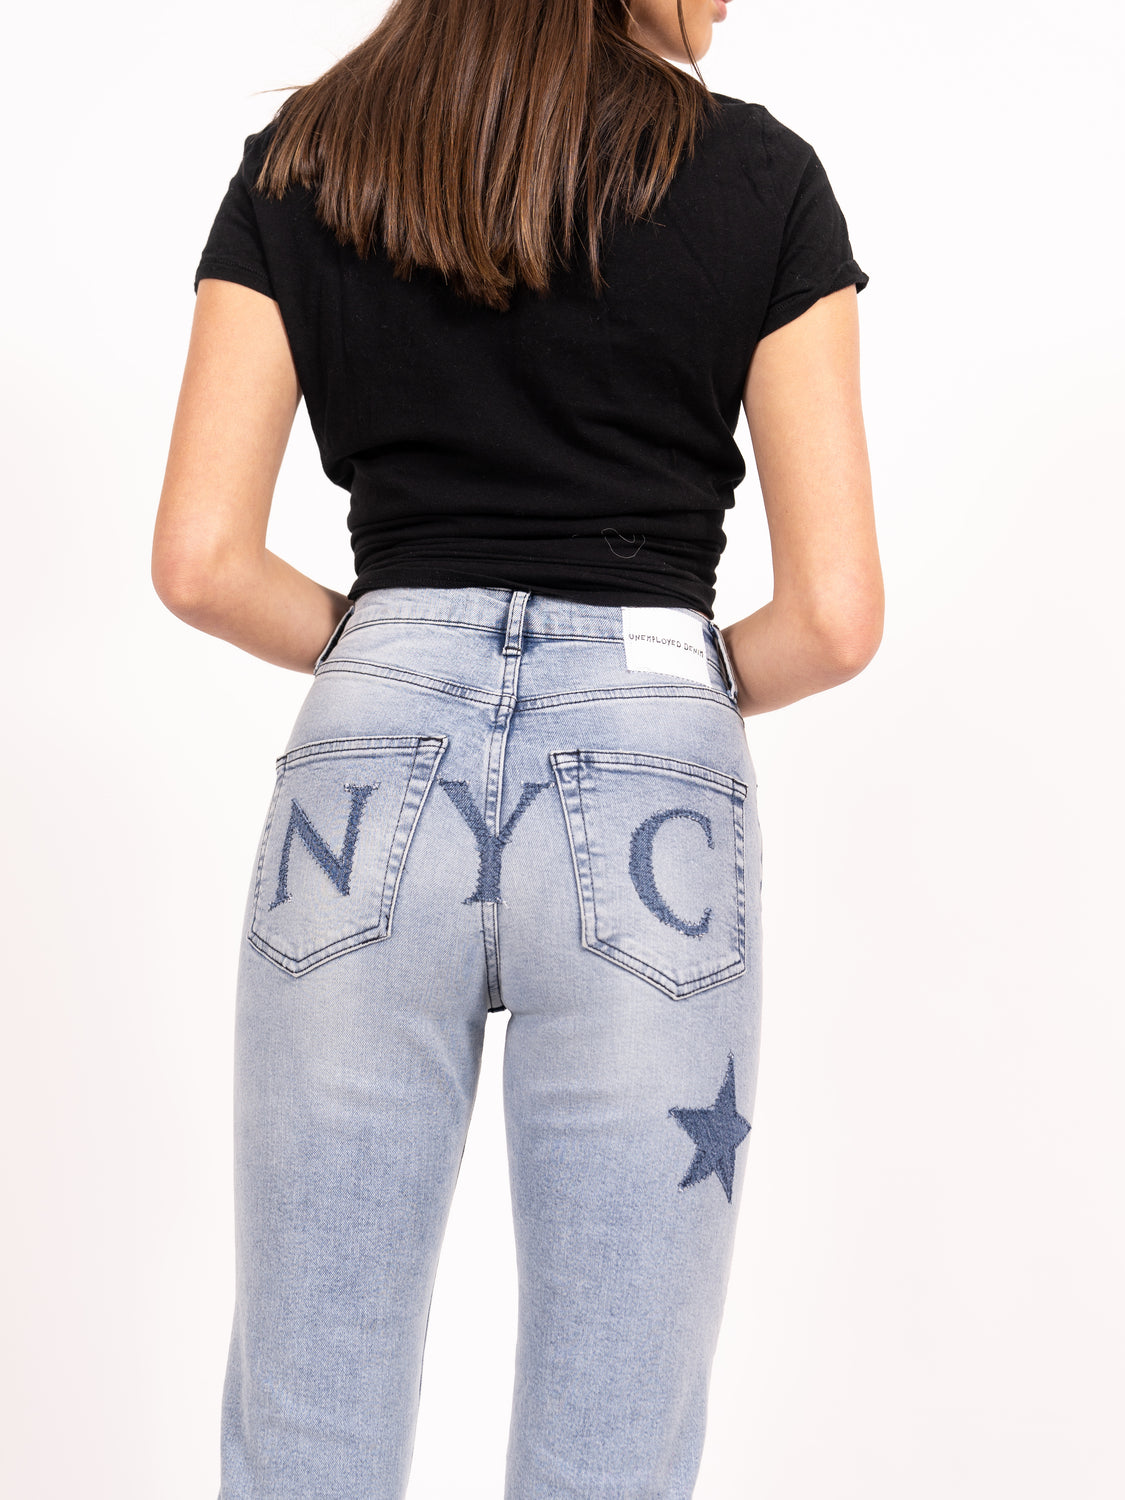 NYC Denim Jean